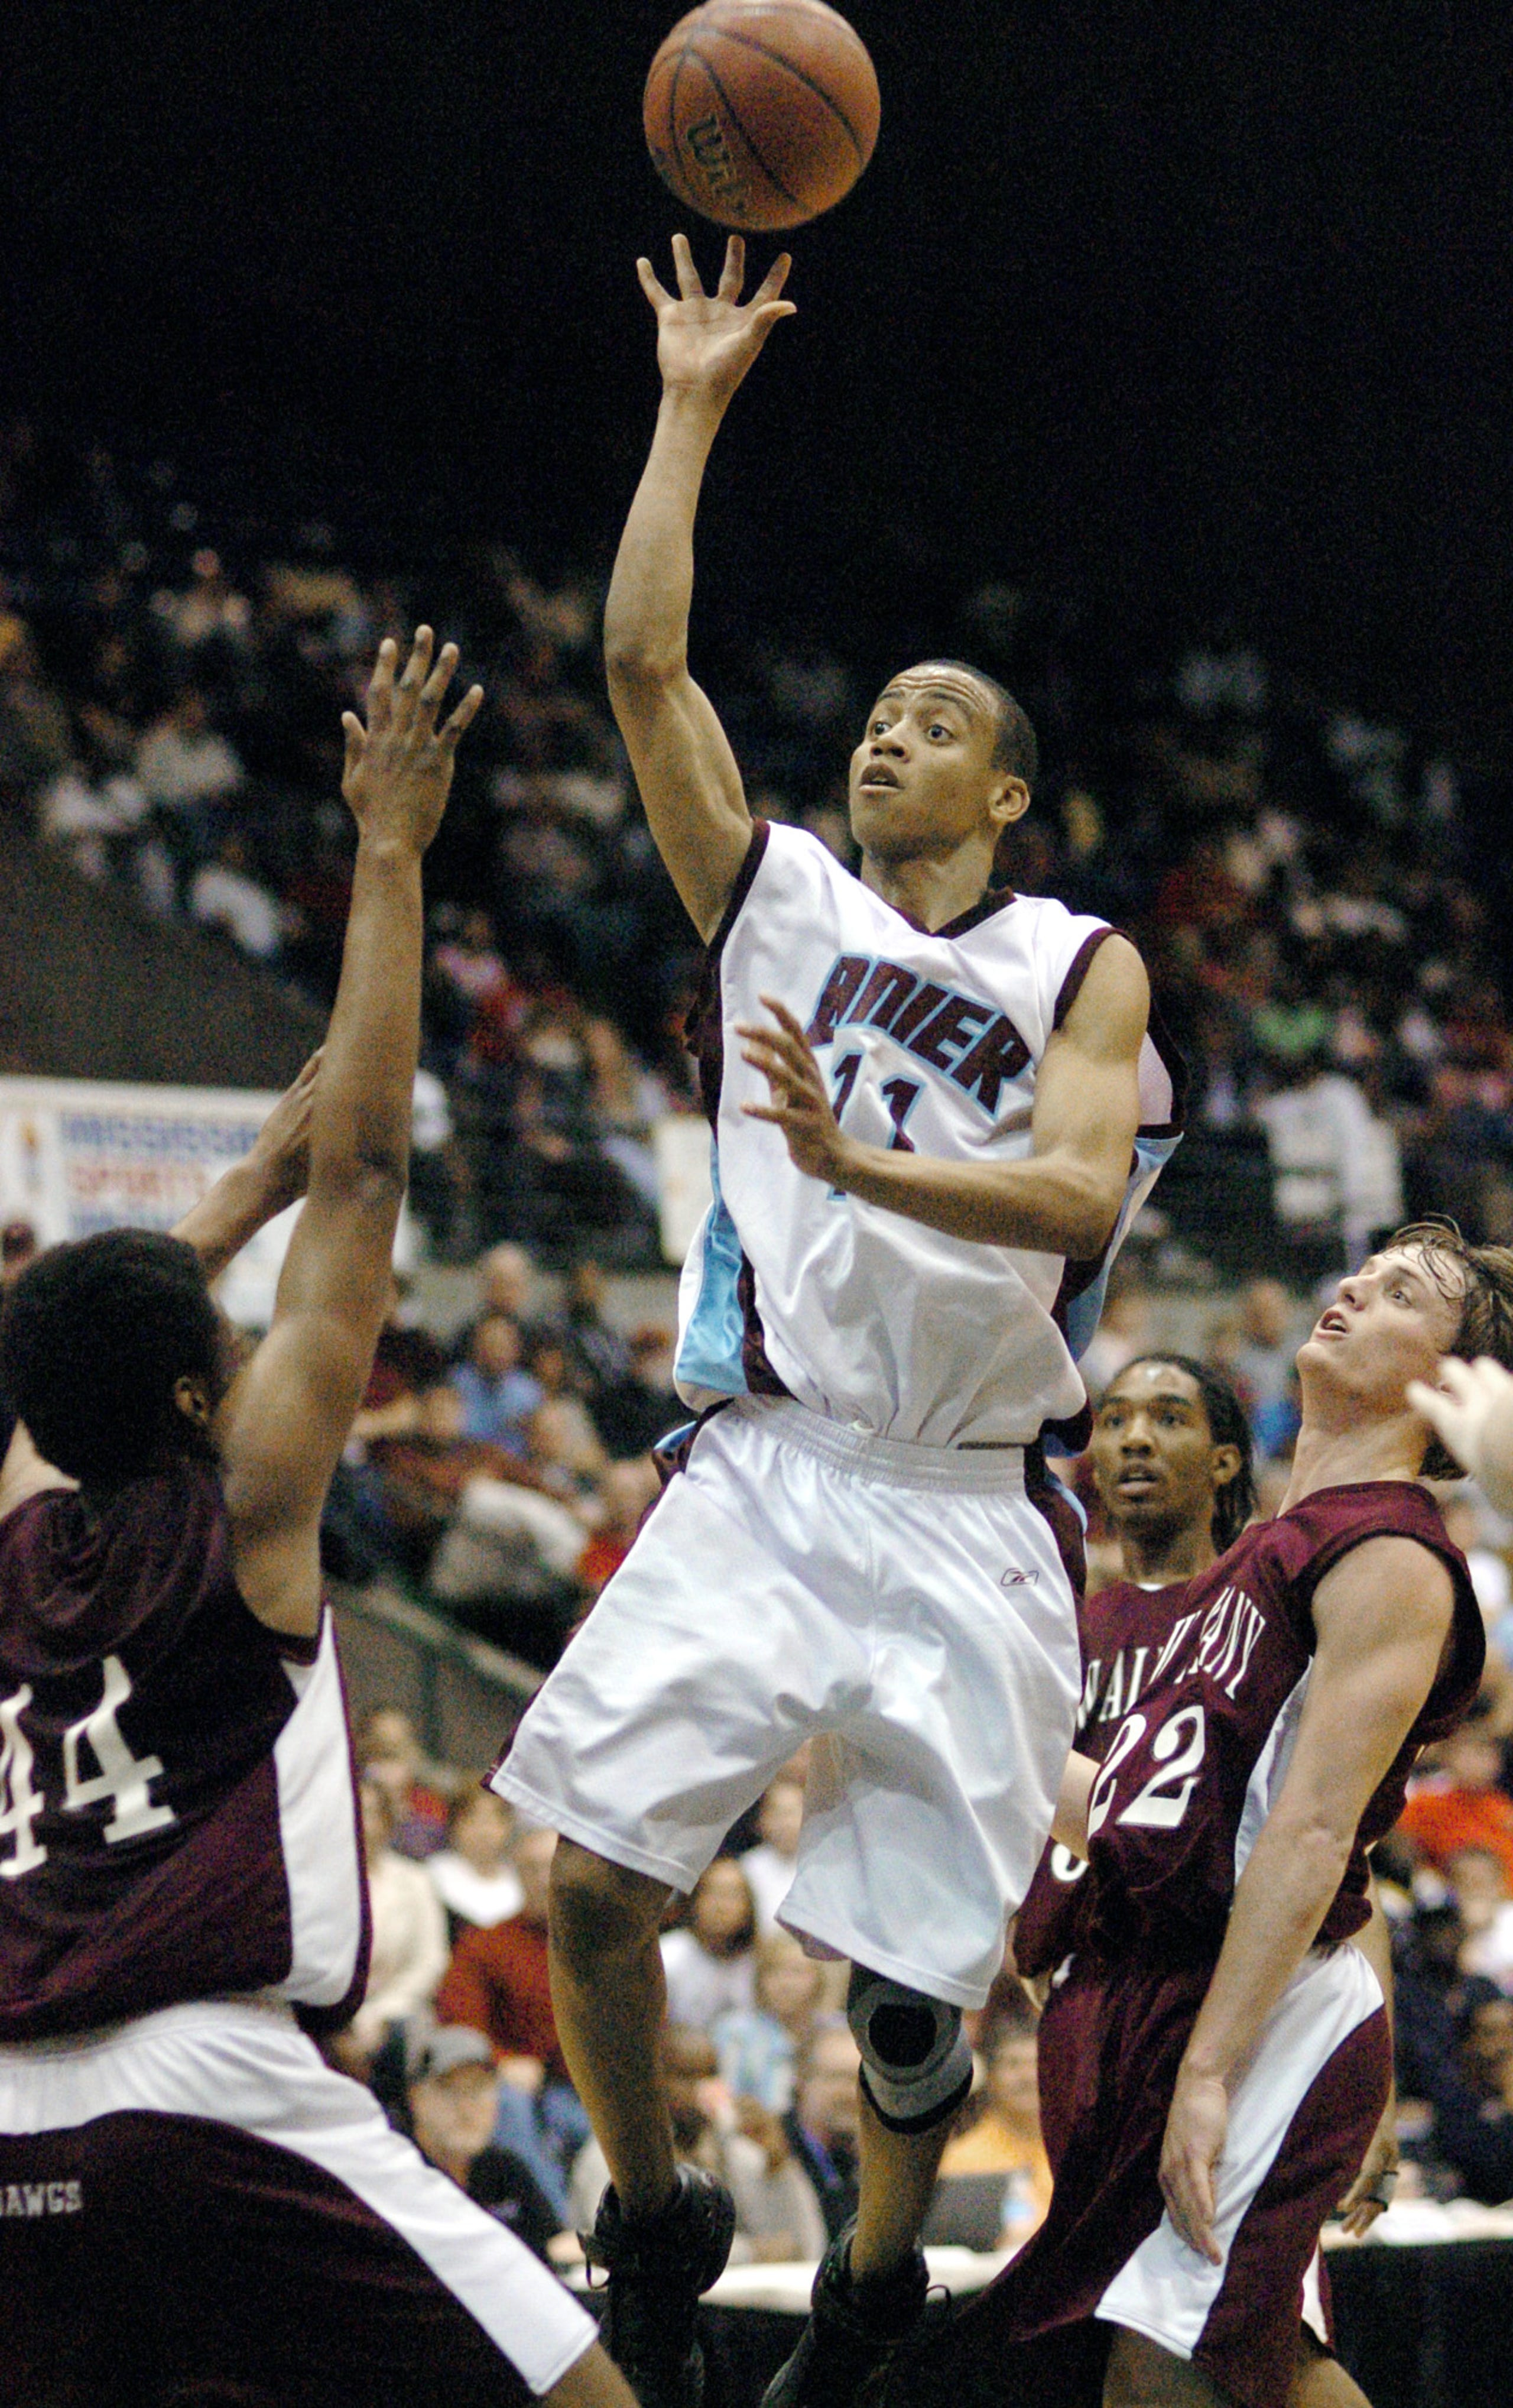 d8446a529 The top 10 high school basketball players in the last 10 years